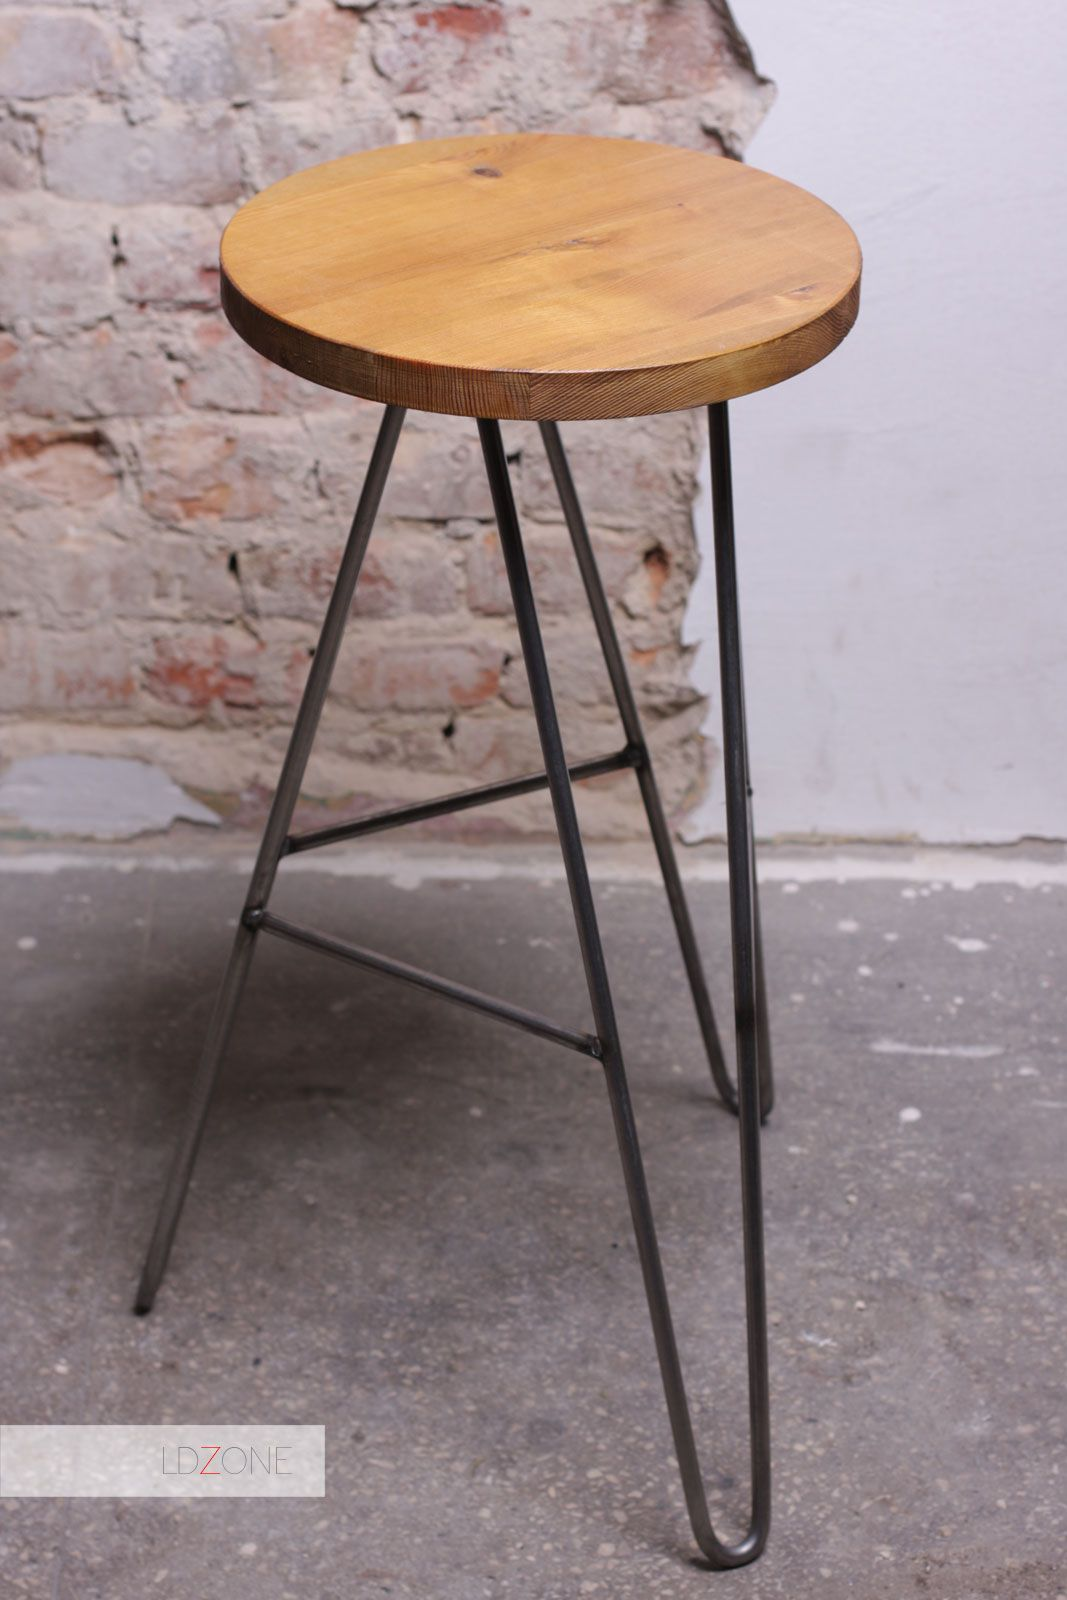 Best Of Industrial Bar Table and Stools